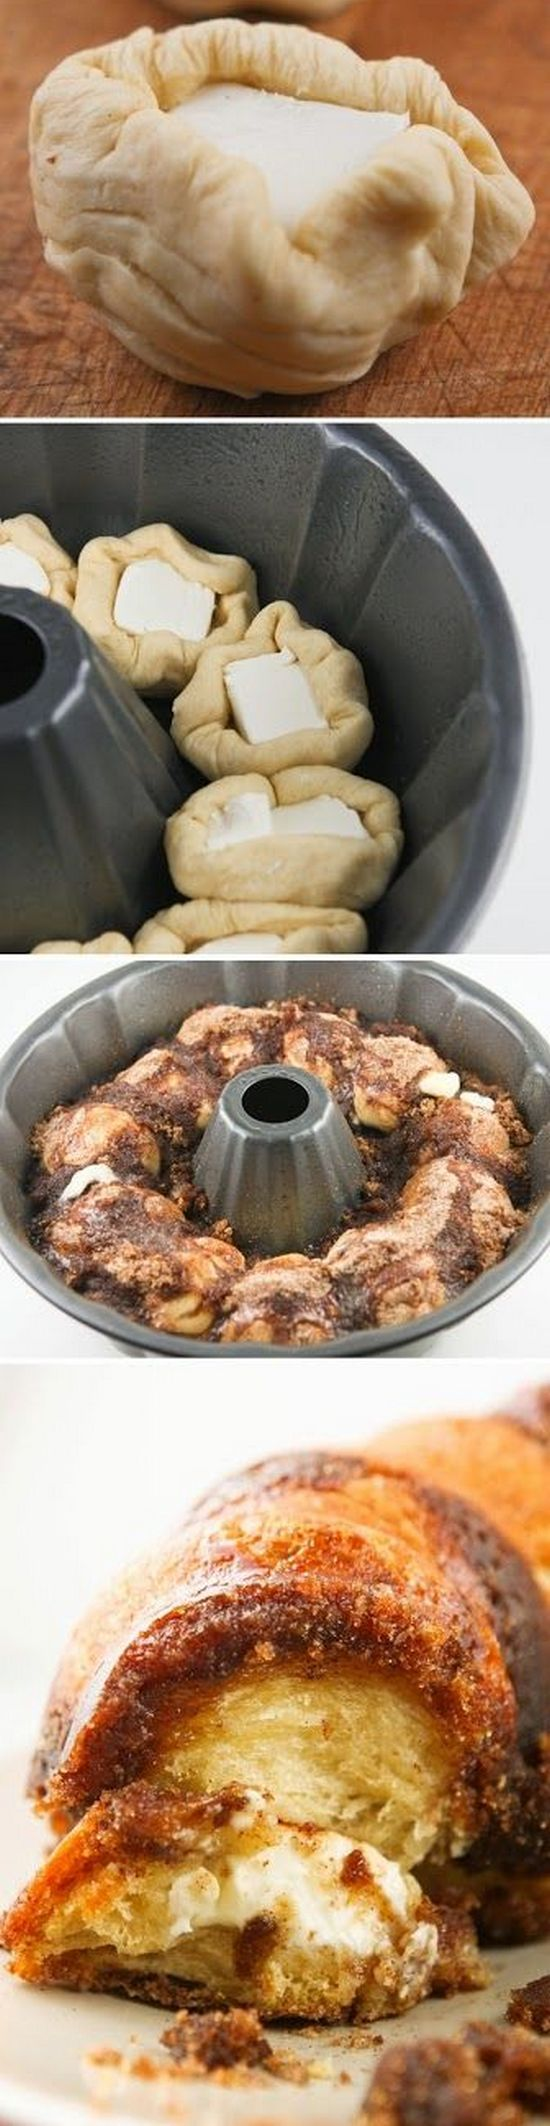 Cream Cheese Cinnamon Monkey Bread made with flaky buttermilk biscuits. OMG!